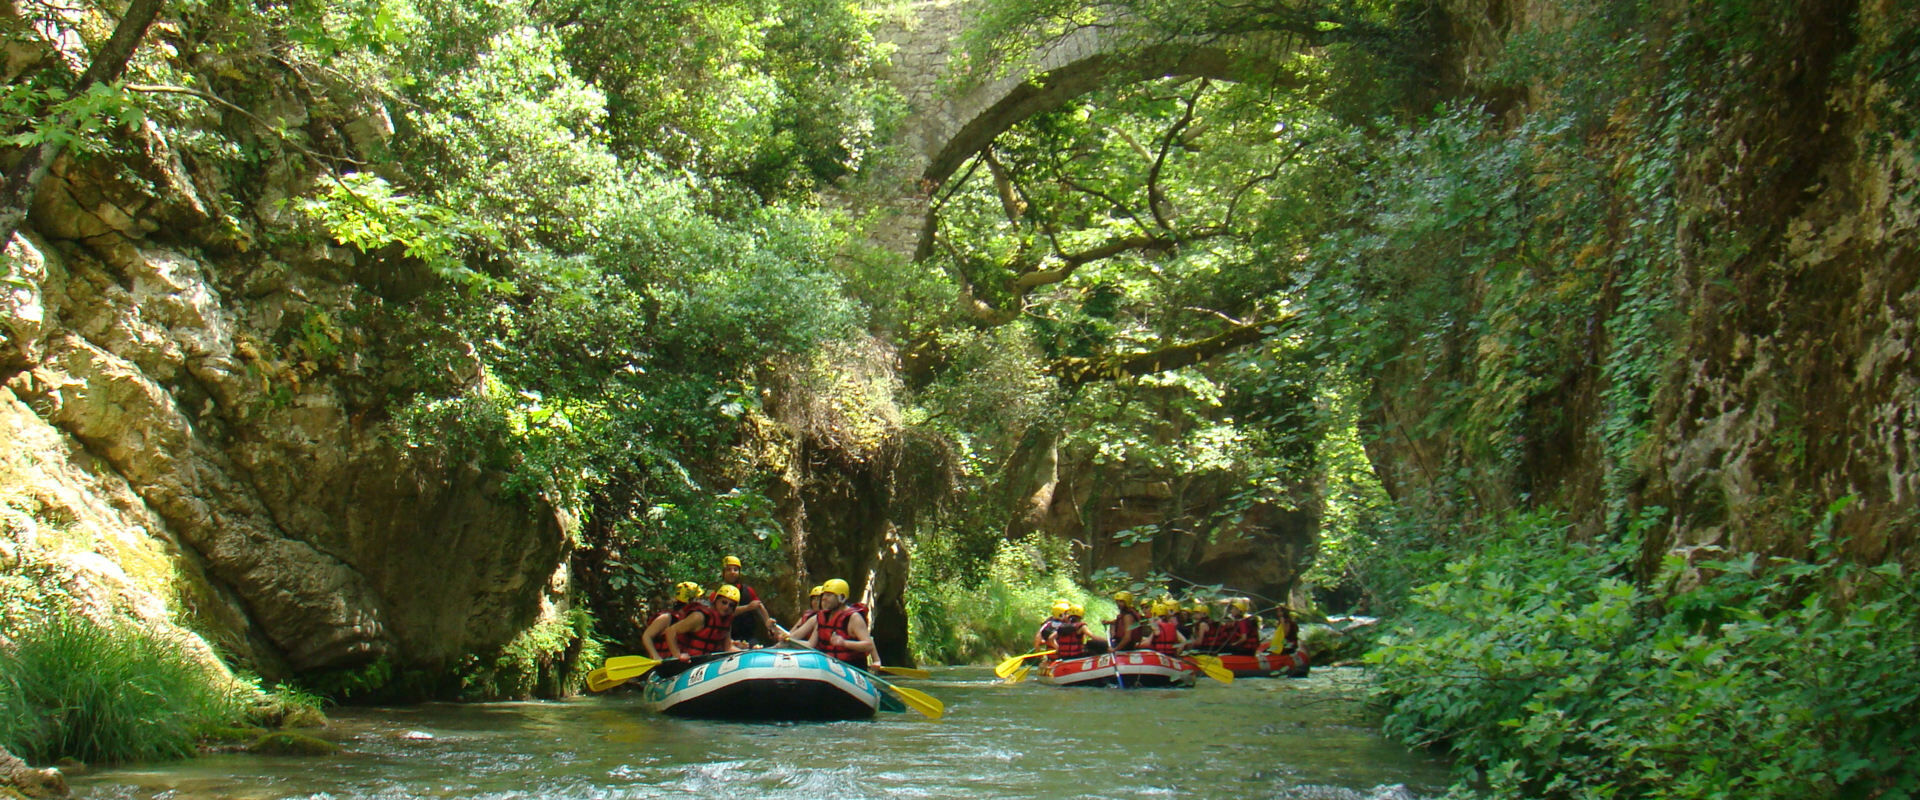 Rafting on the Lousios river in Mountainous Arcadia